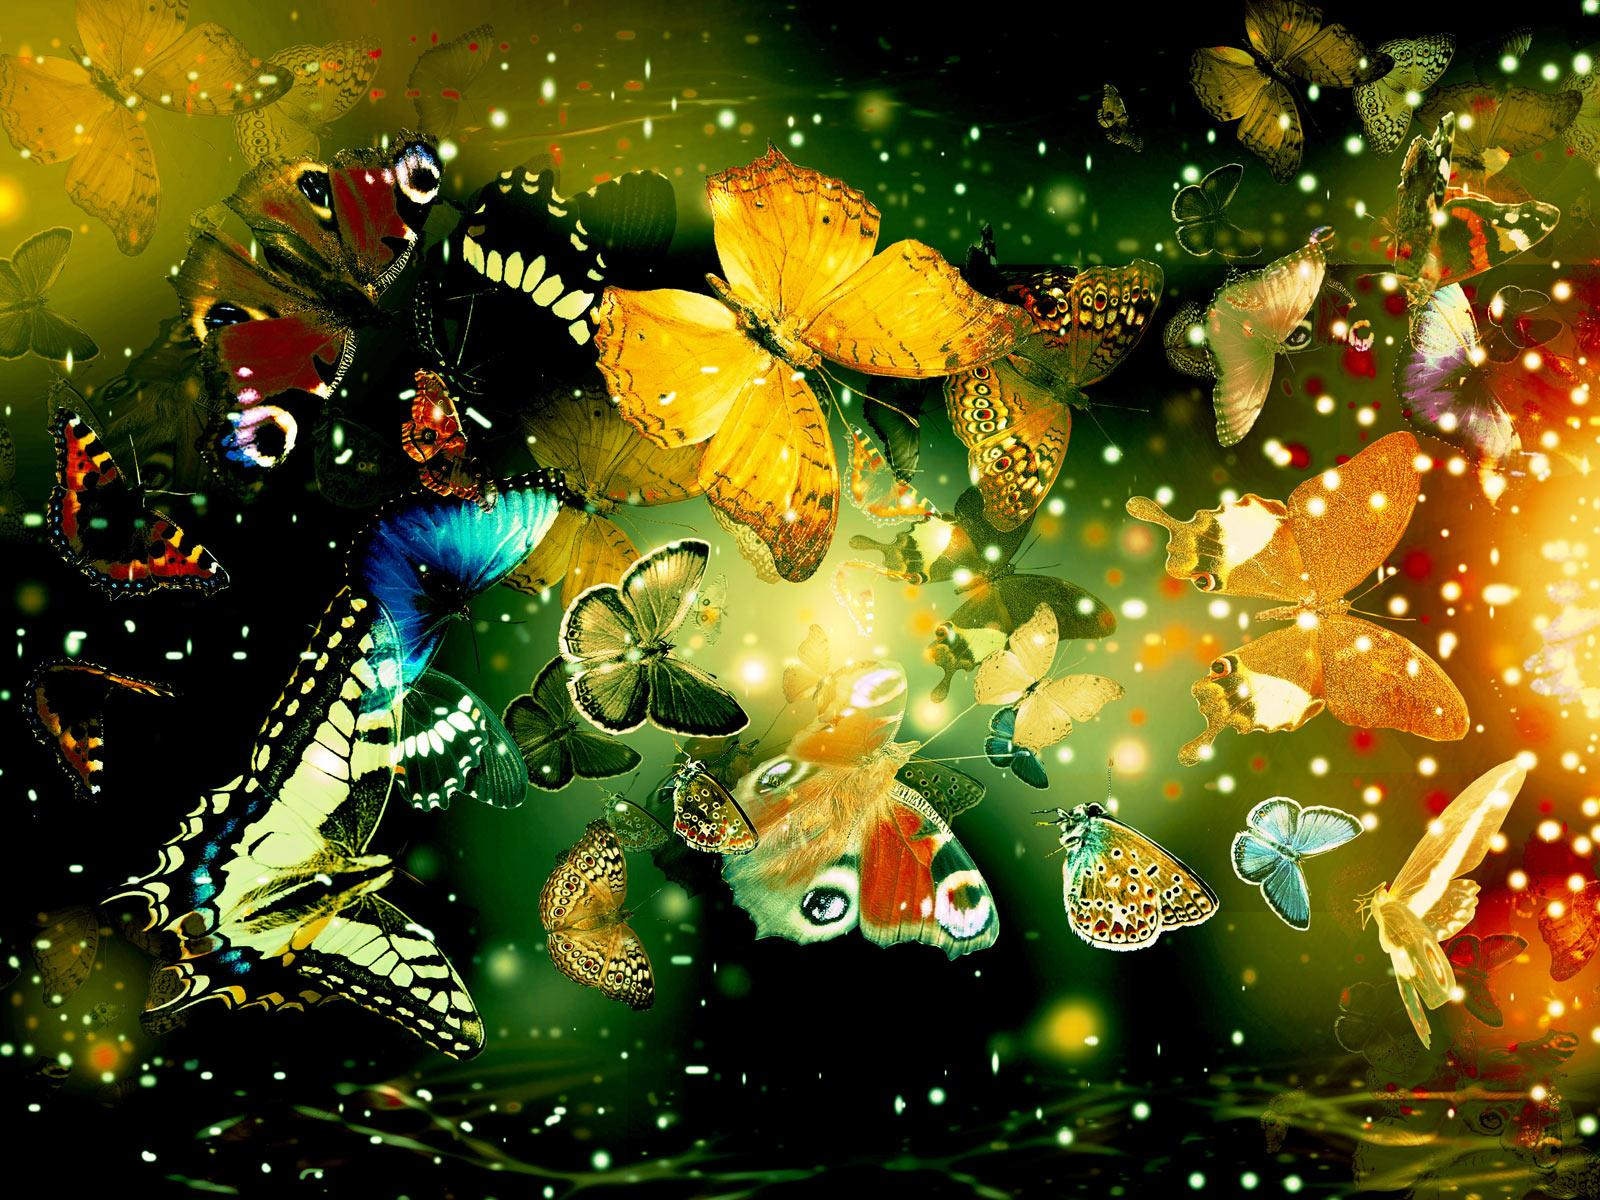 Butterfly Artistic wallpapers HD quality